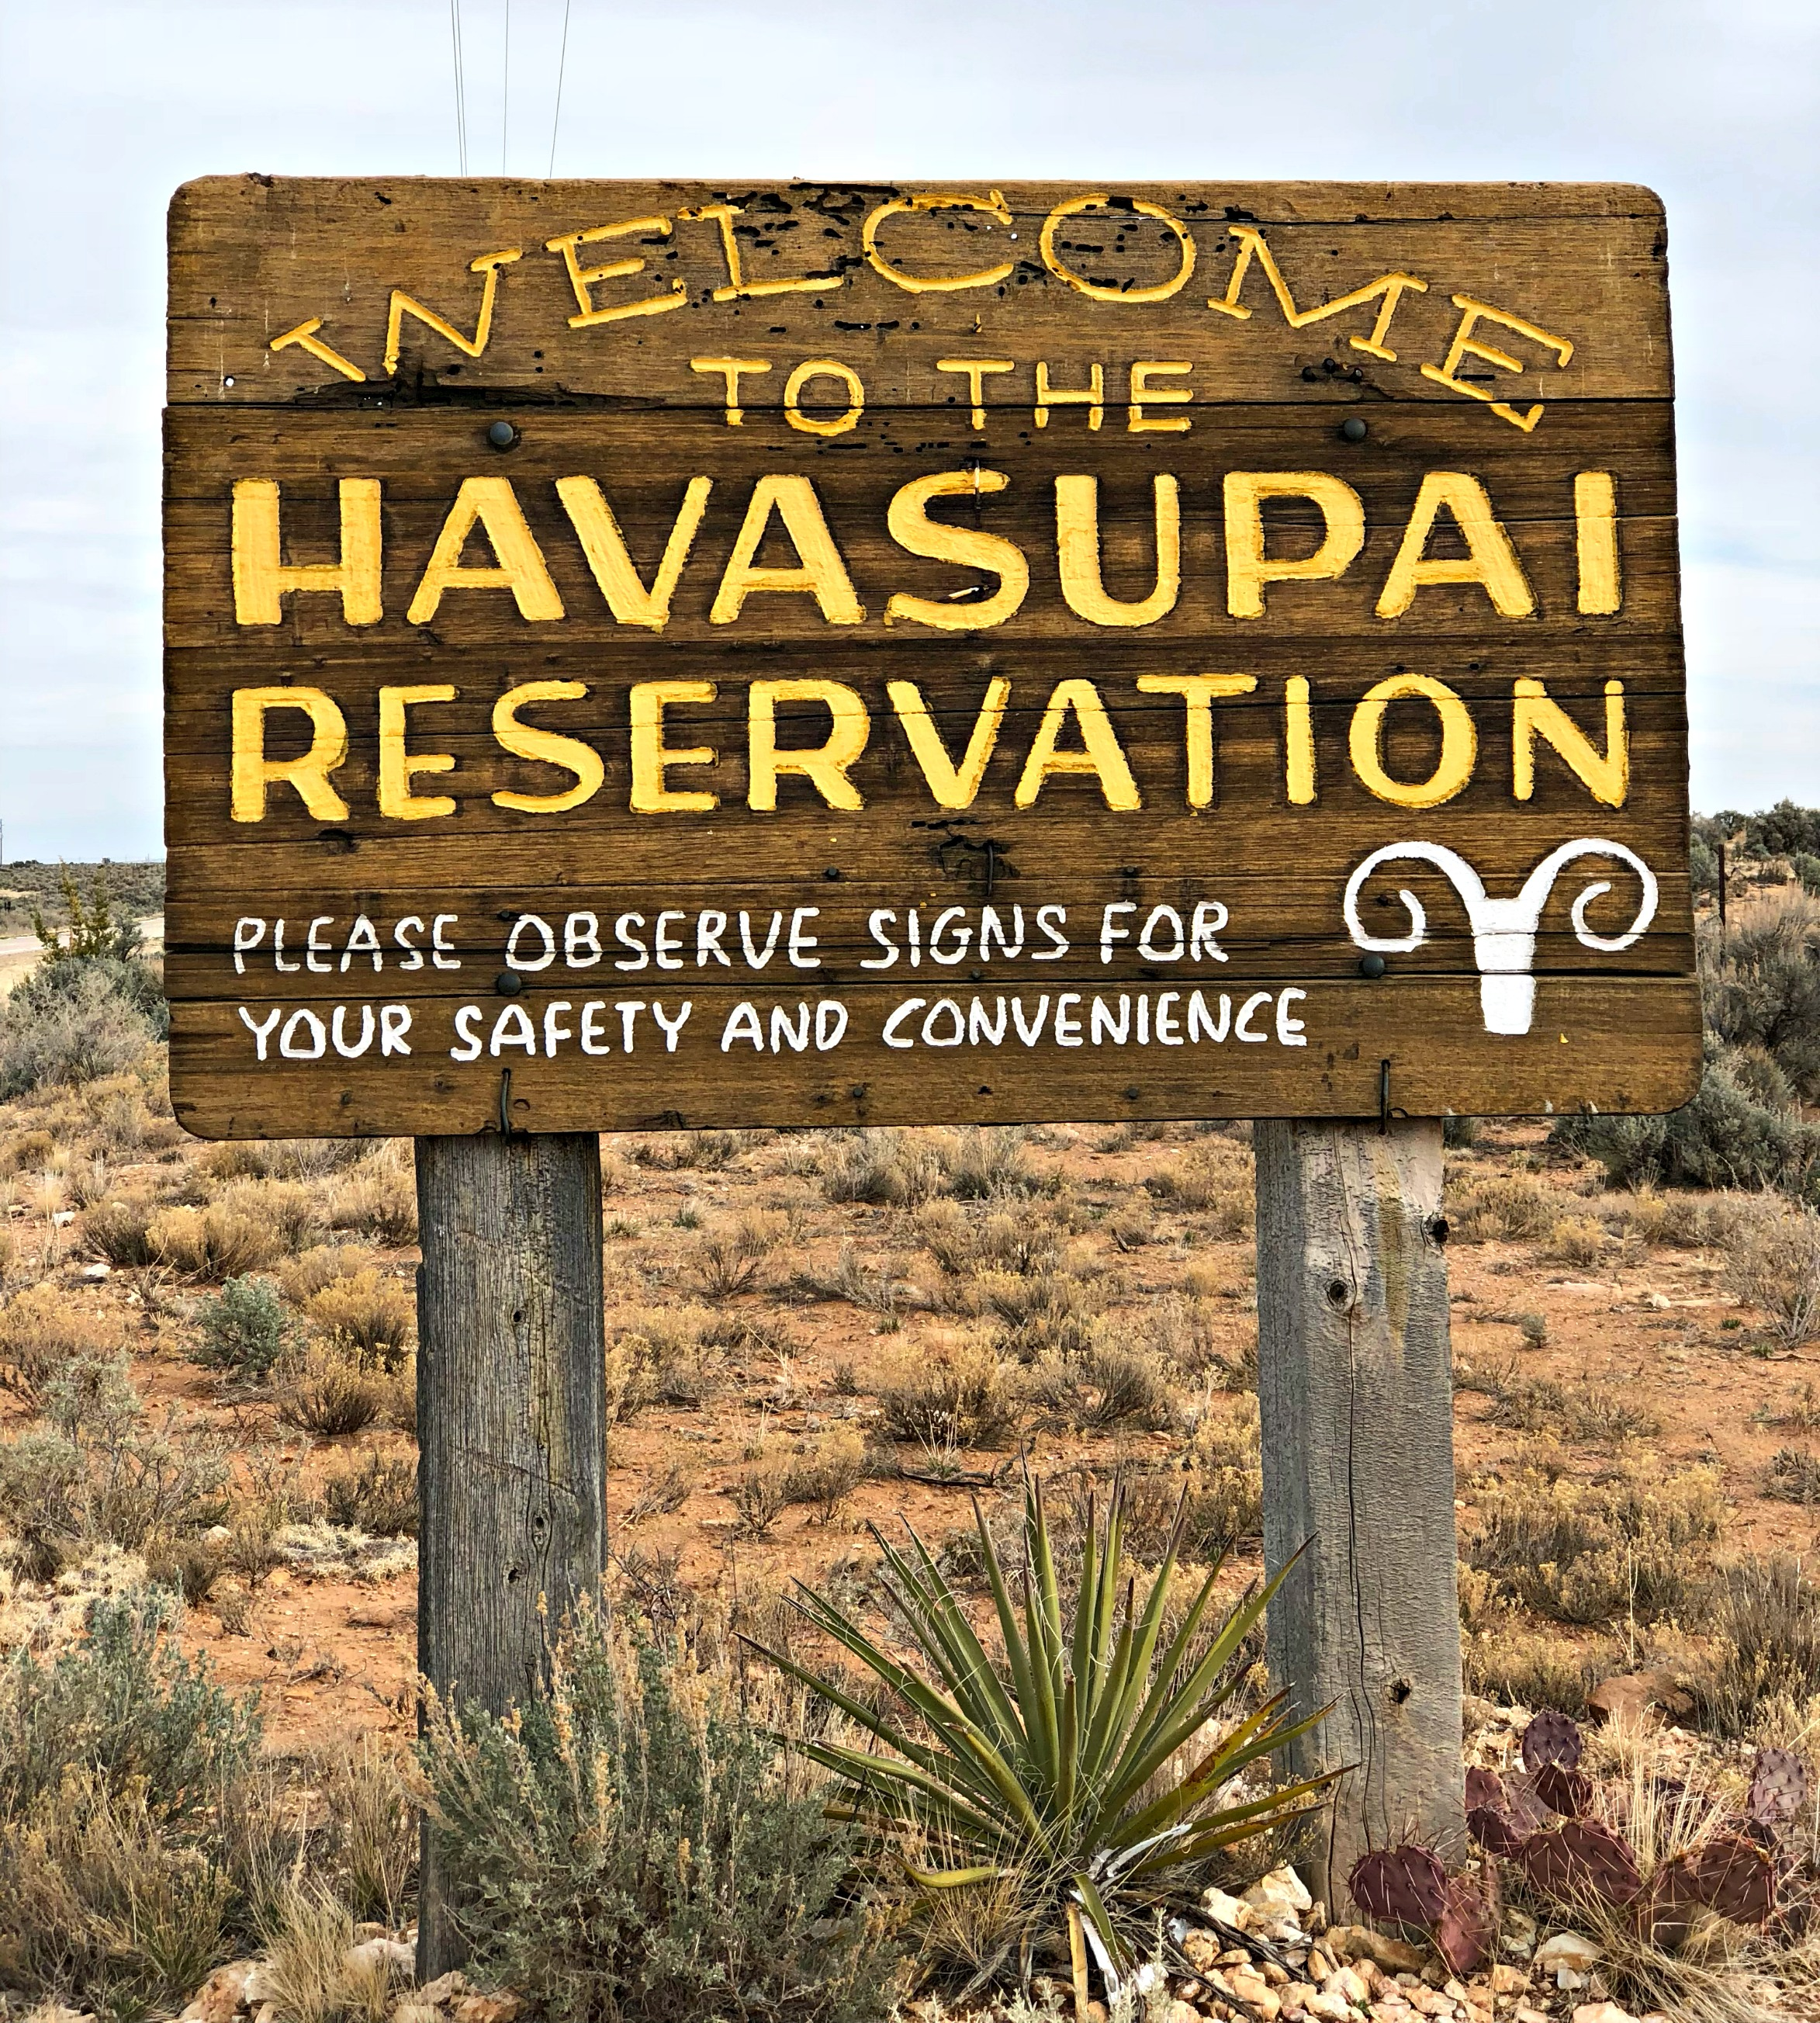 havasupai-reservation-welcome-sign